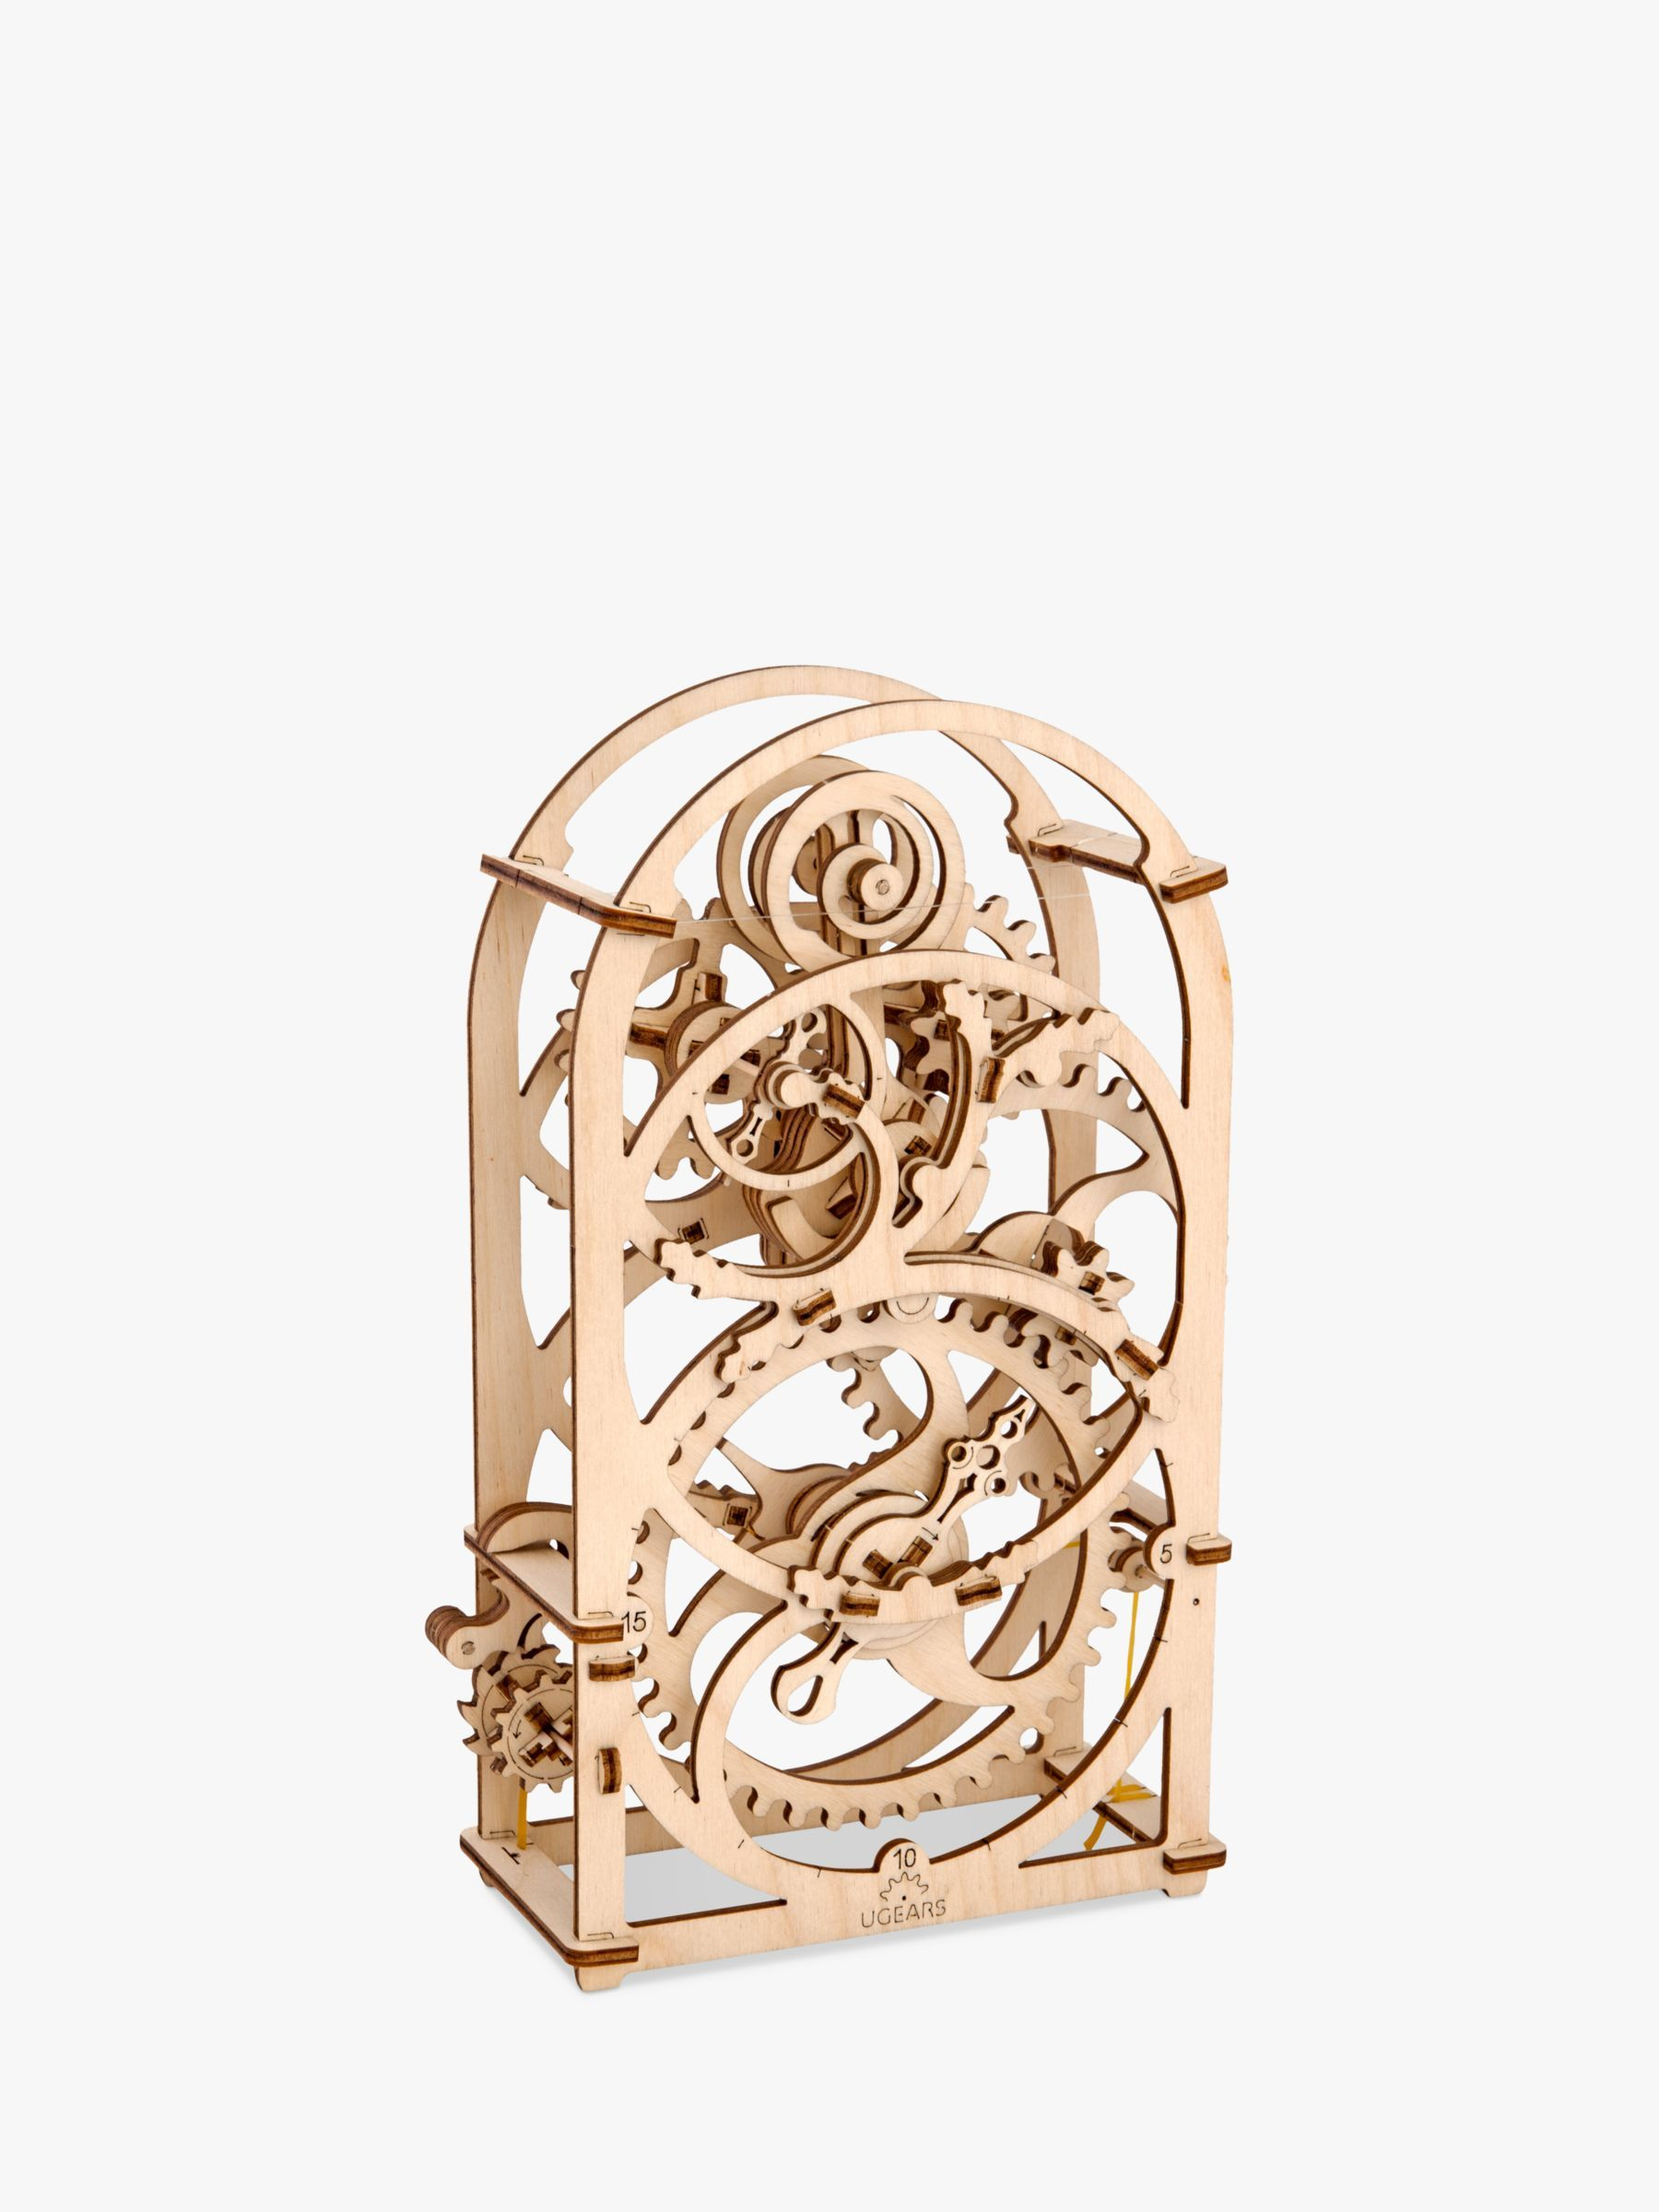 Ugears Chronograph Timer Wood Puzzle In 2019 Wood Moving Kit